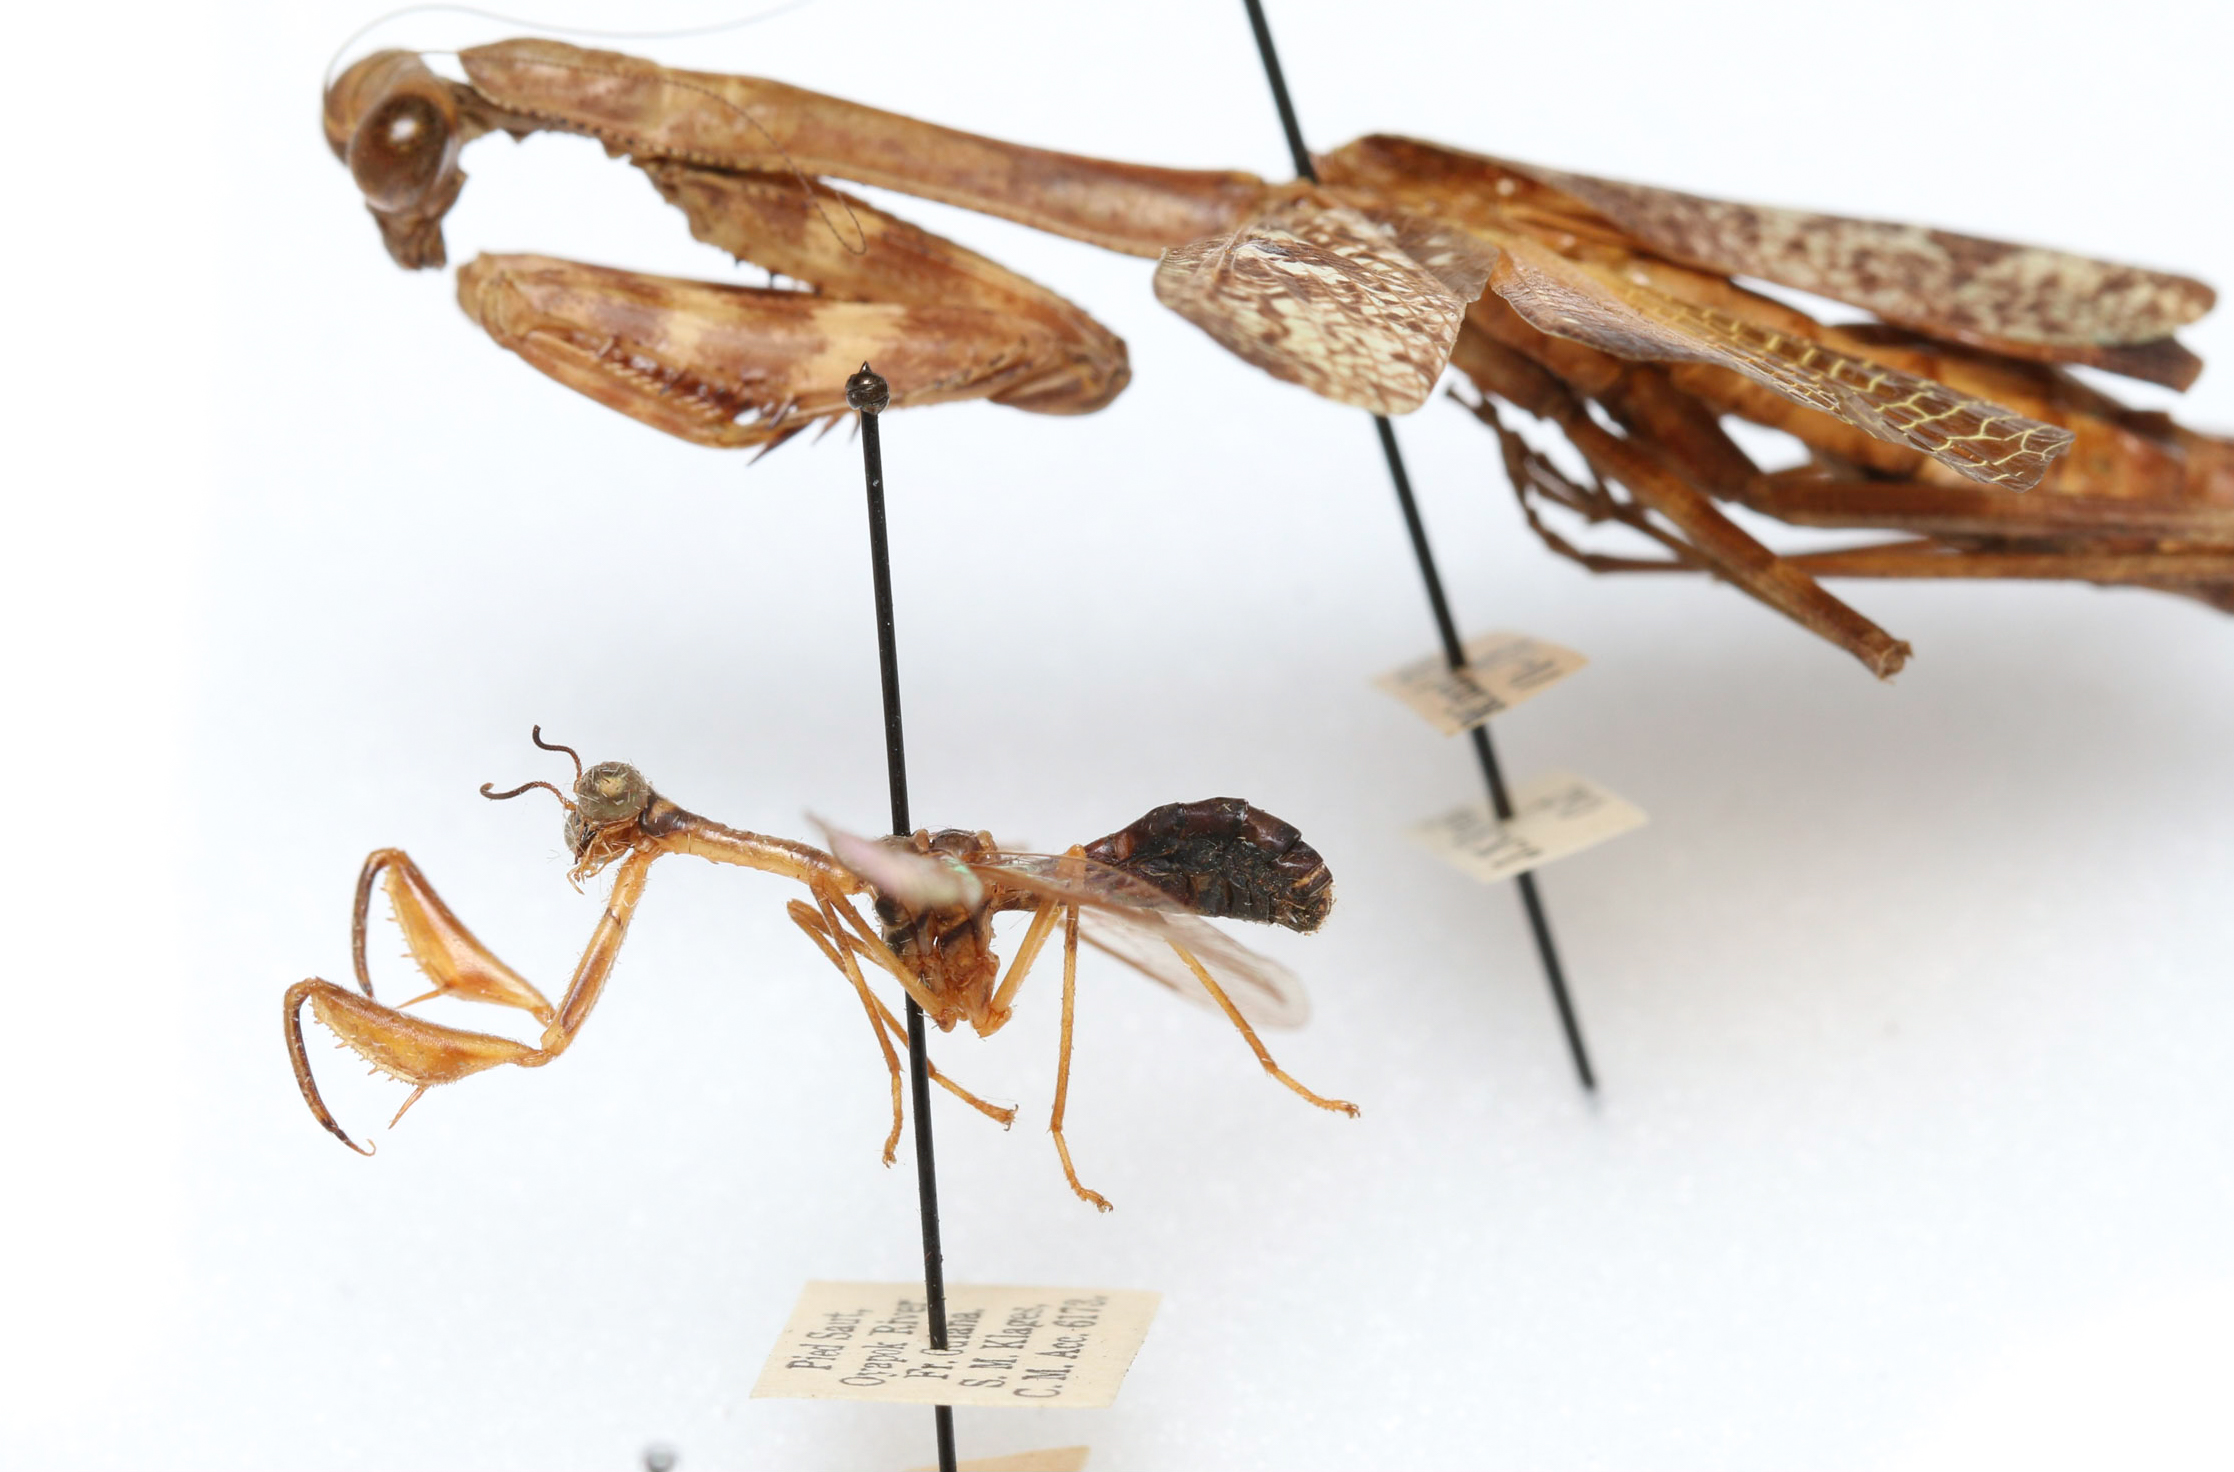 These insect specimens look very similar; Both have raptorial front legs for catching prey. However, they are not closely related. The mantisfly, in the foreground, is in the scientific order, Neuroptera. The praying mantis, in the background, is in the scientific order, Mantodea. They are as related to each other as grasshoppers are related to butterflies. Having insect specimens available to compare with each other is critical for solving entomological problems.